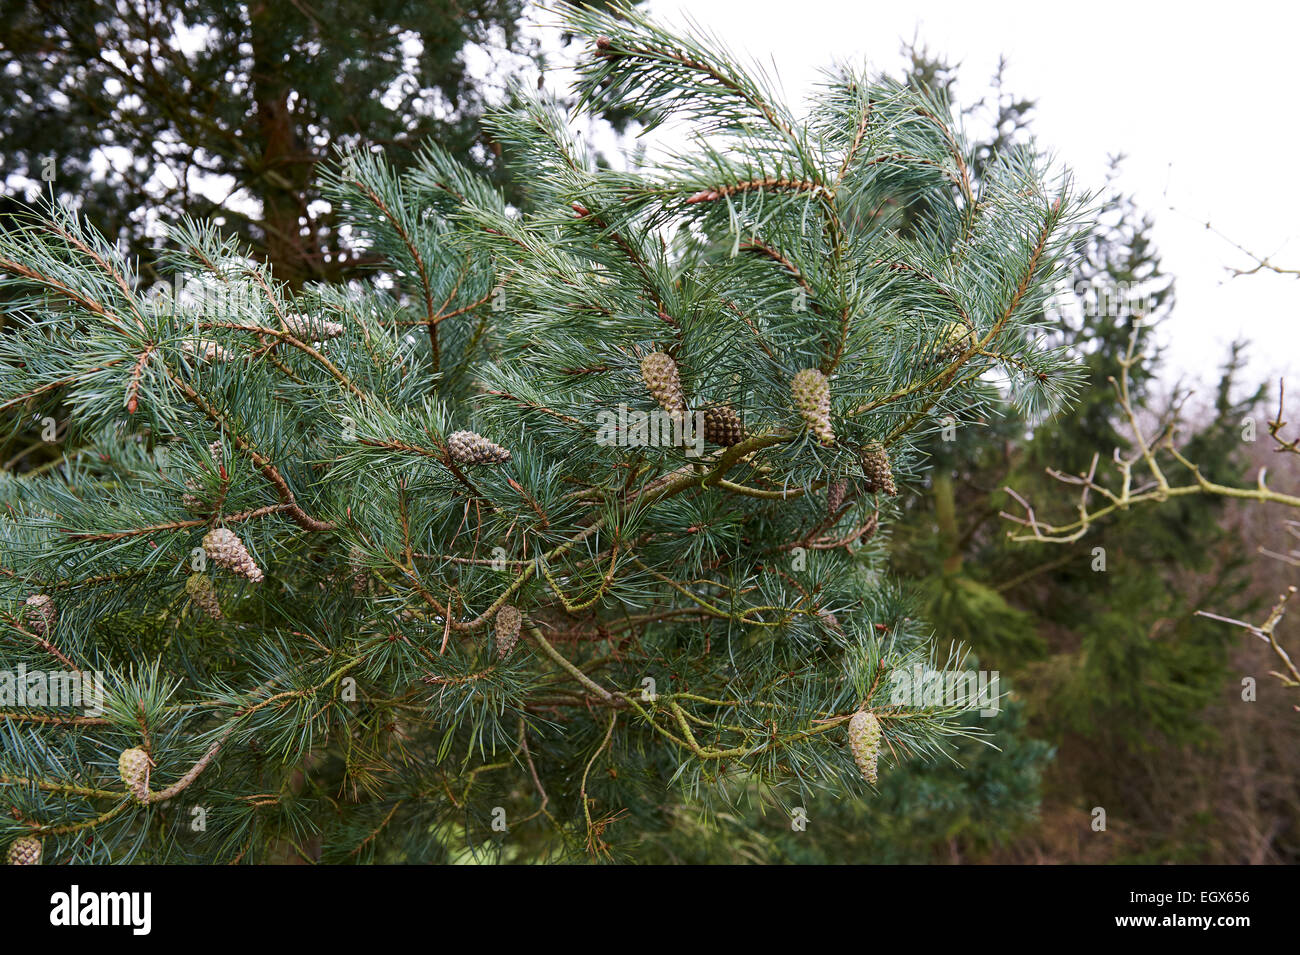 Scots Pine Trees, Pinus sylvestris. Common Native Tree in Scotland and planted elsewhere in Britain. - Stock Image